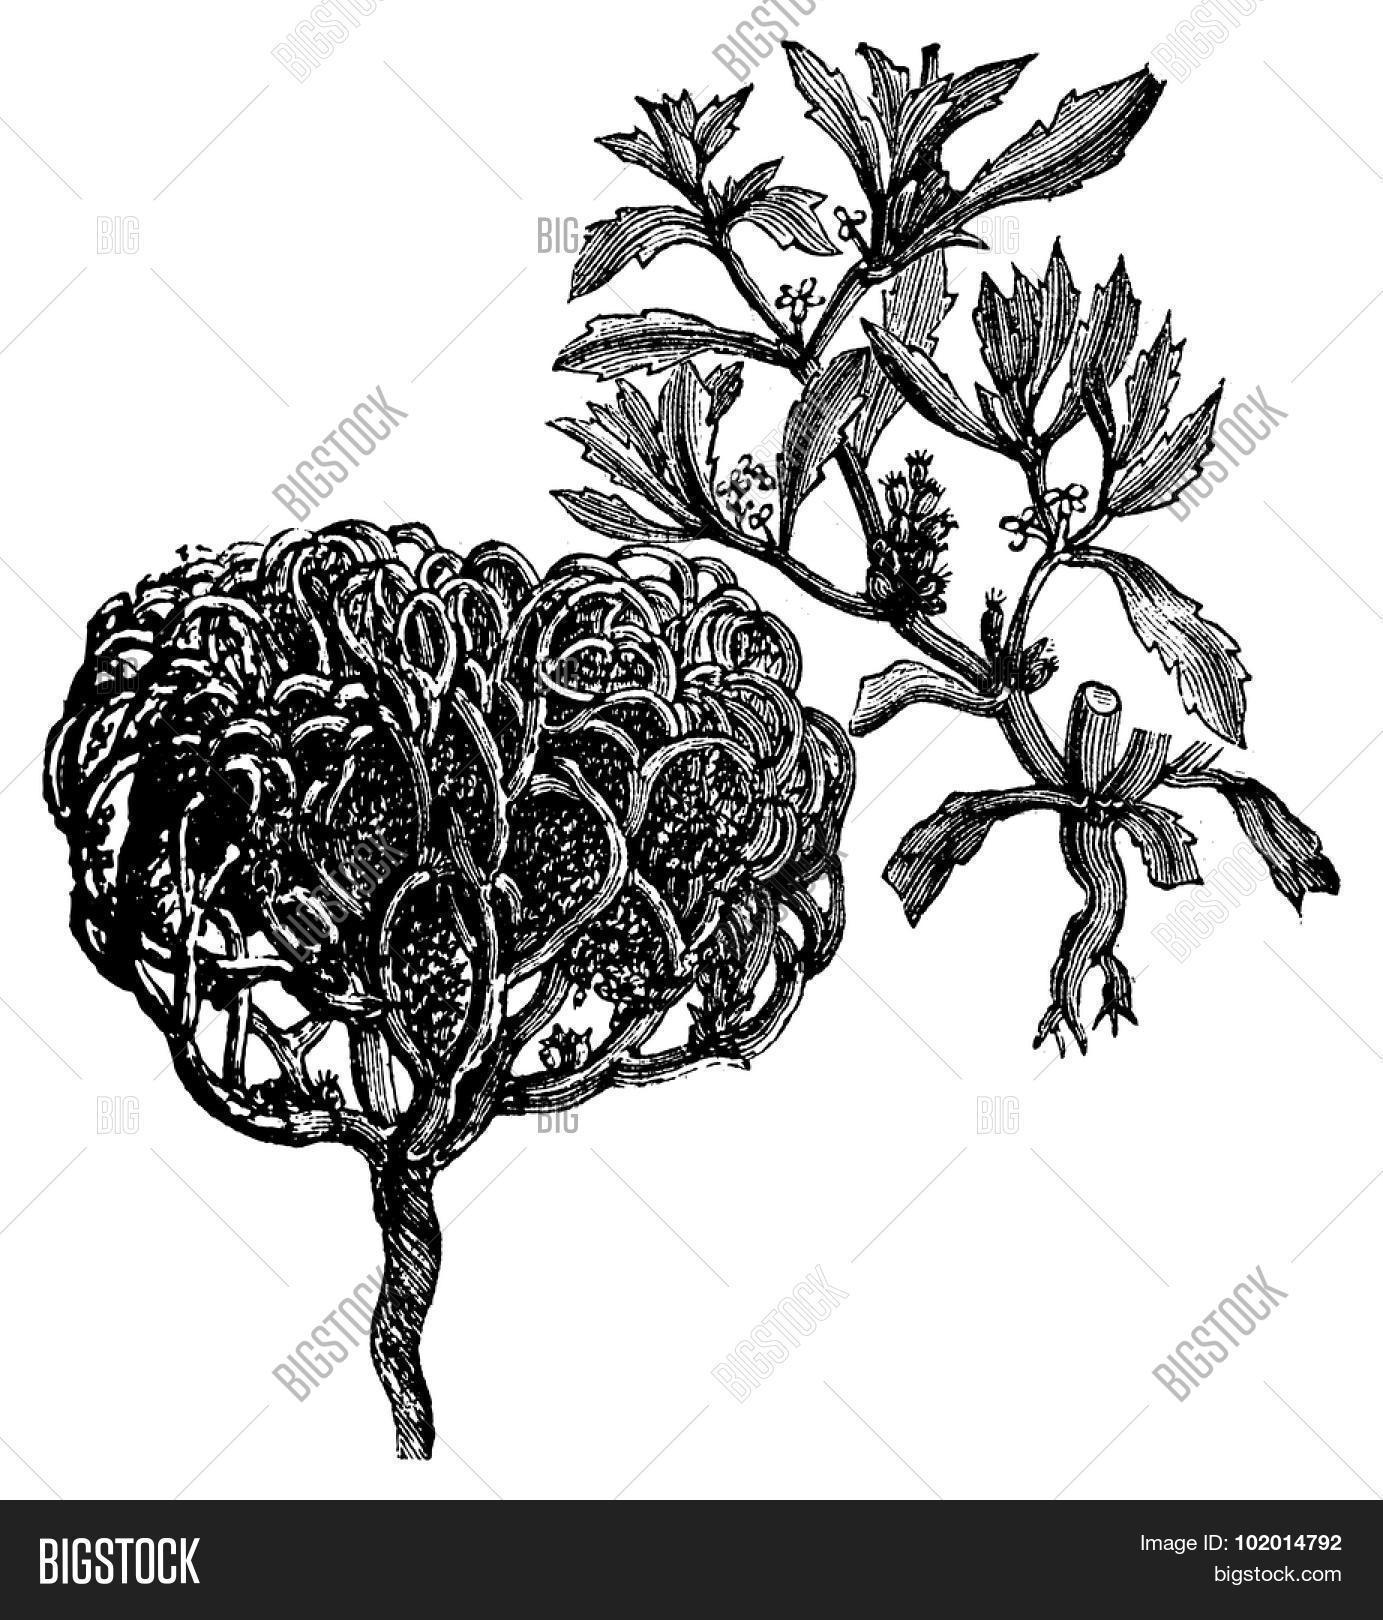 anastatica,ancient,antique,art,artwork,black,branch,brassicaceae,cuciferae,dead,dinosaur,drawing,engraved,engraving,etching,flower,foliage,hand,hierochuntica,illustration,isolated,jericho,mary,monotypic,old,palestinian,picture,plant,print,resurrection,rose,s,true,tumble,tumbleweed,vector,vintage,weed,wheel,white